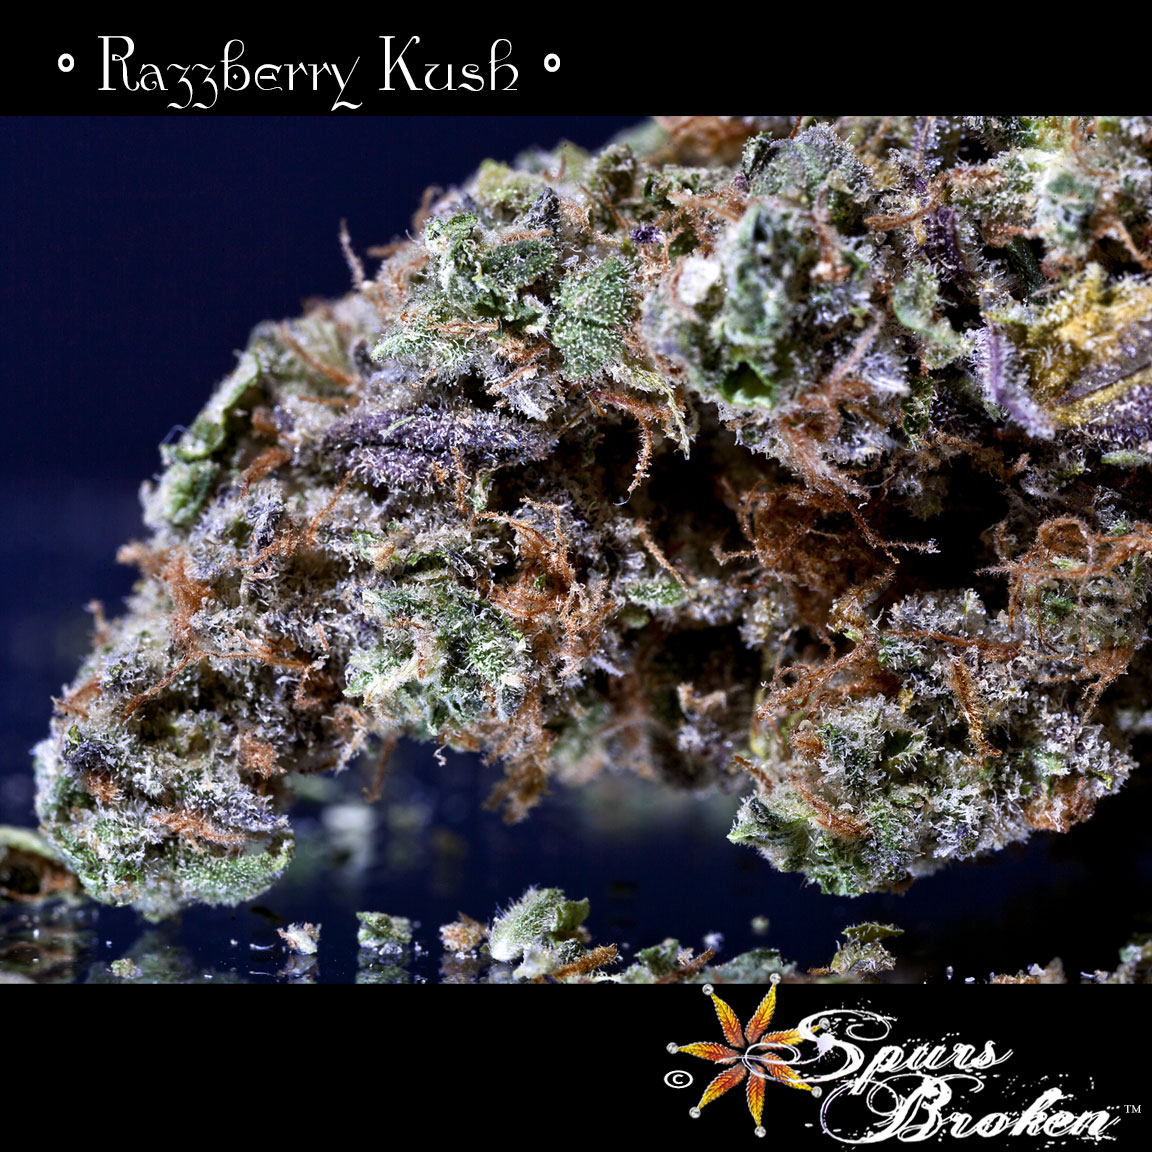 Razzberry Kush - Cannabis Macro Photography by Spurs Broken (Robert R. Sanders)